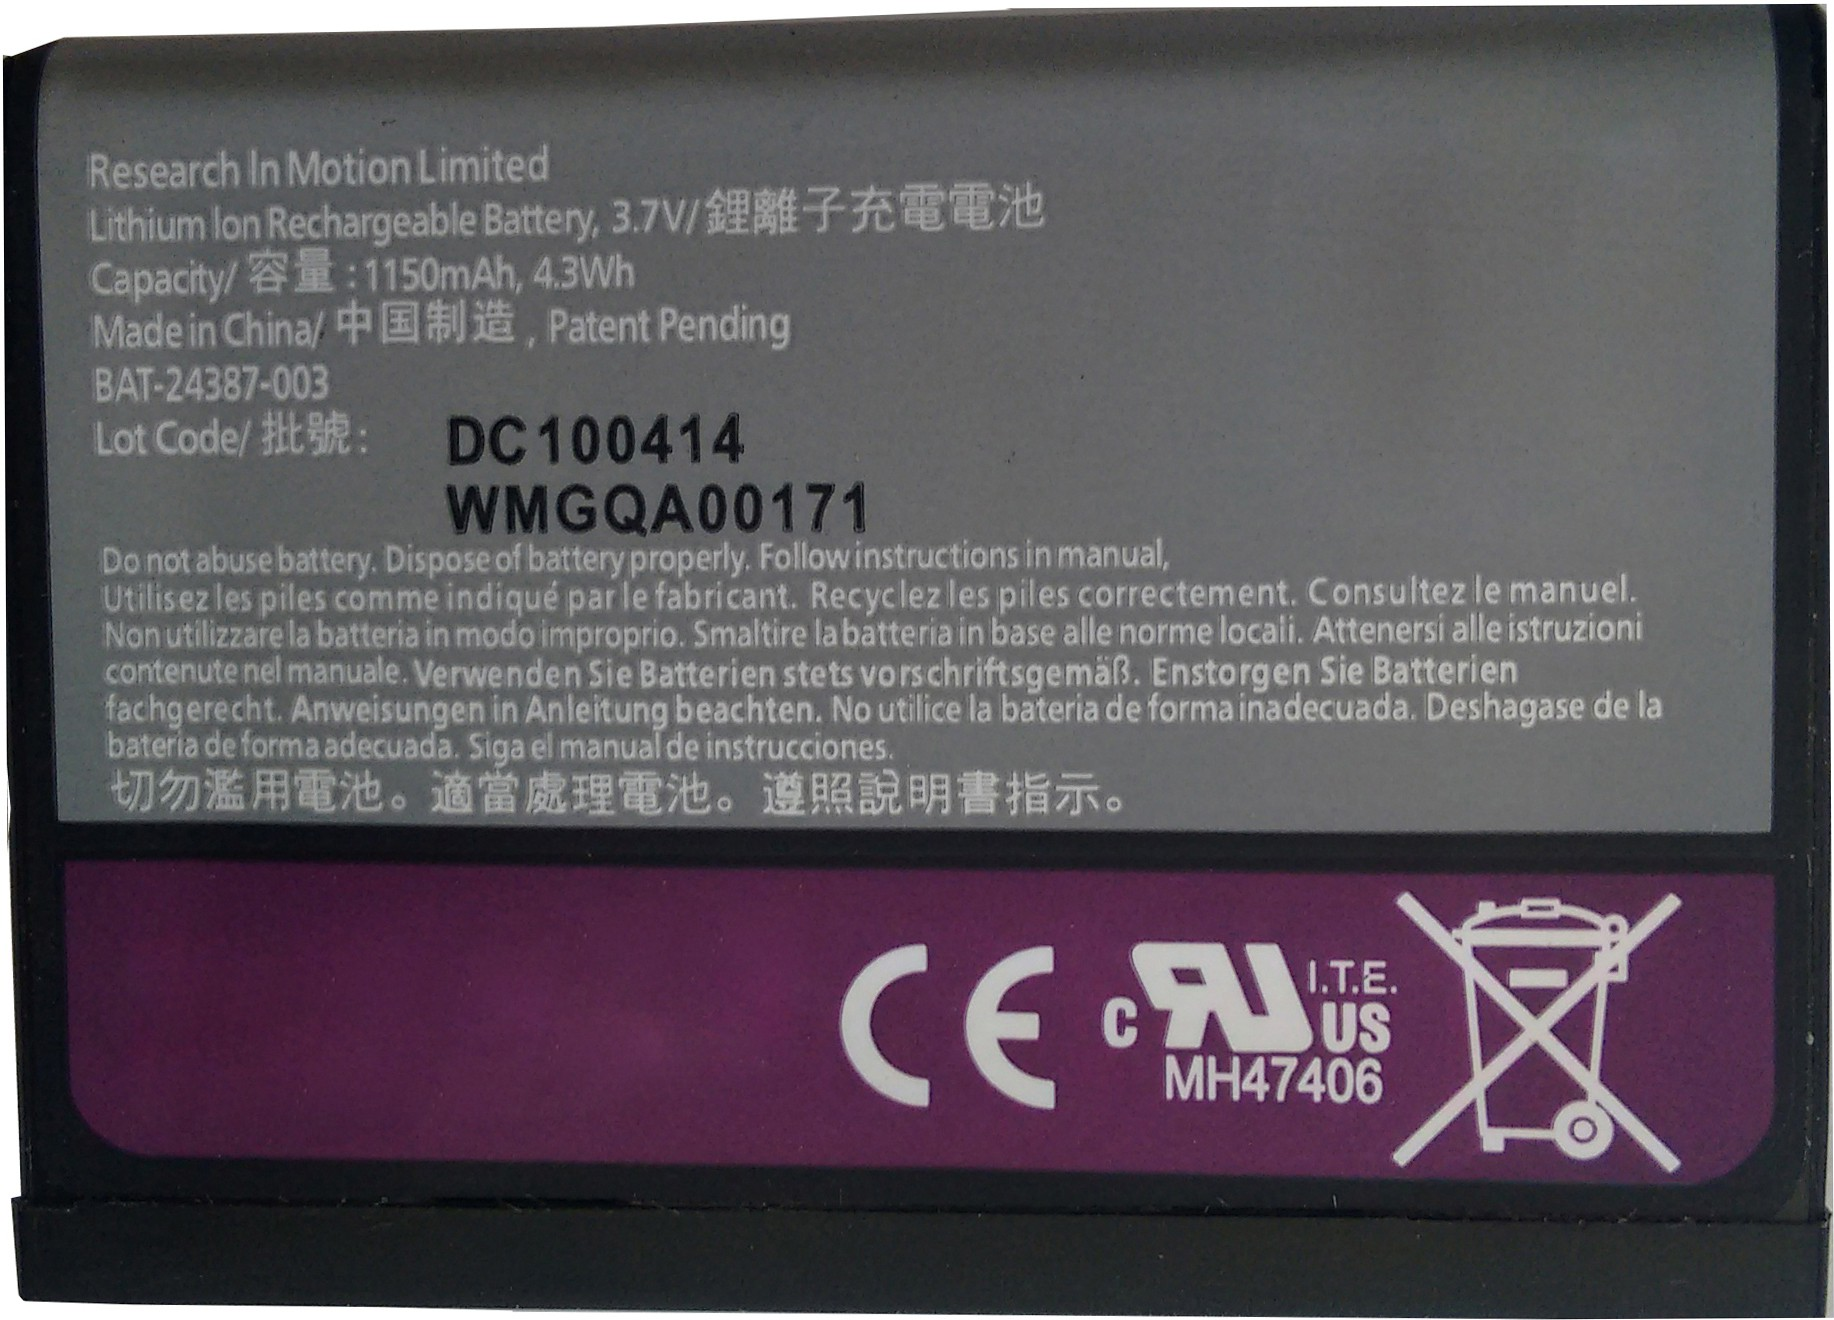 Enolex  Battery - Rock Star Quality- For Ome 9670 F-M1(Purple, Grey)